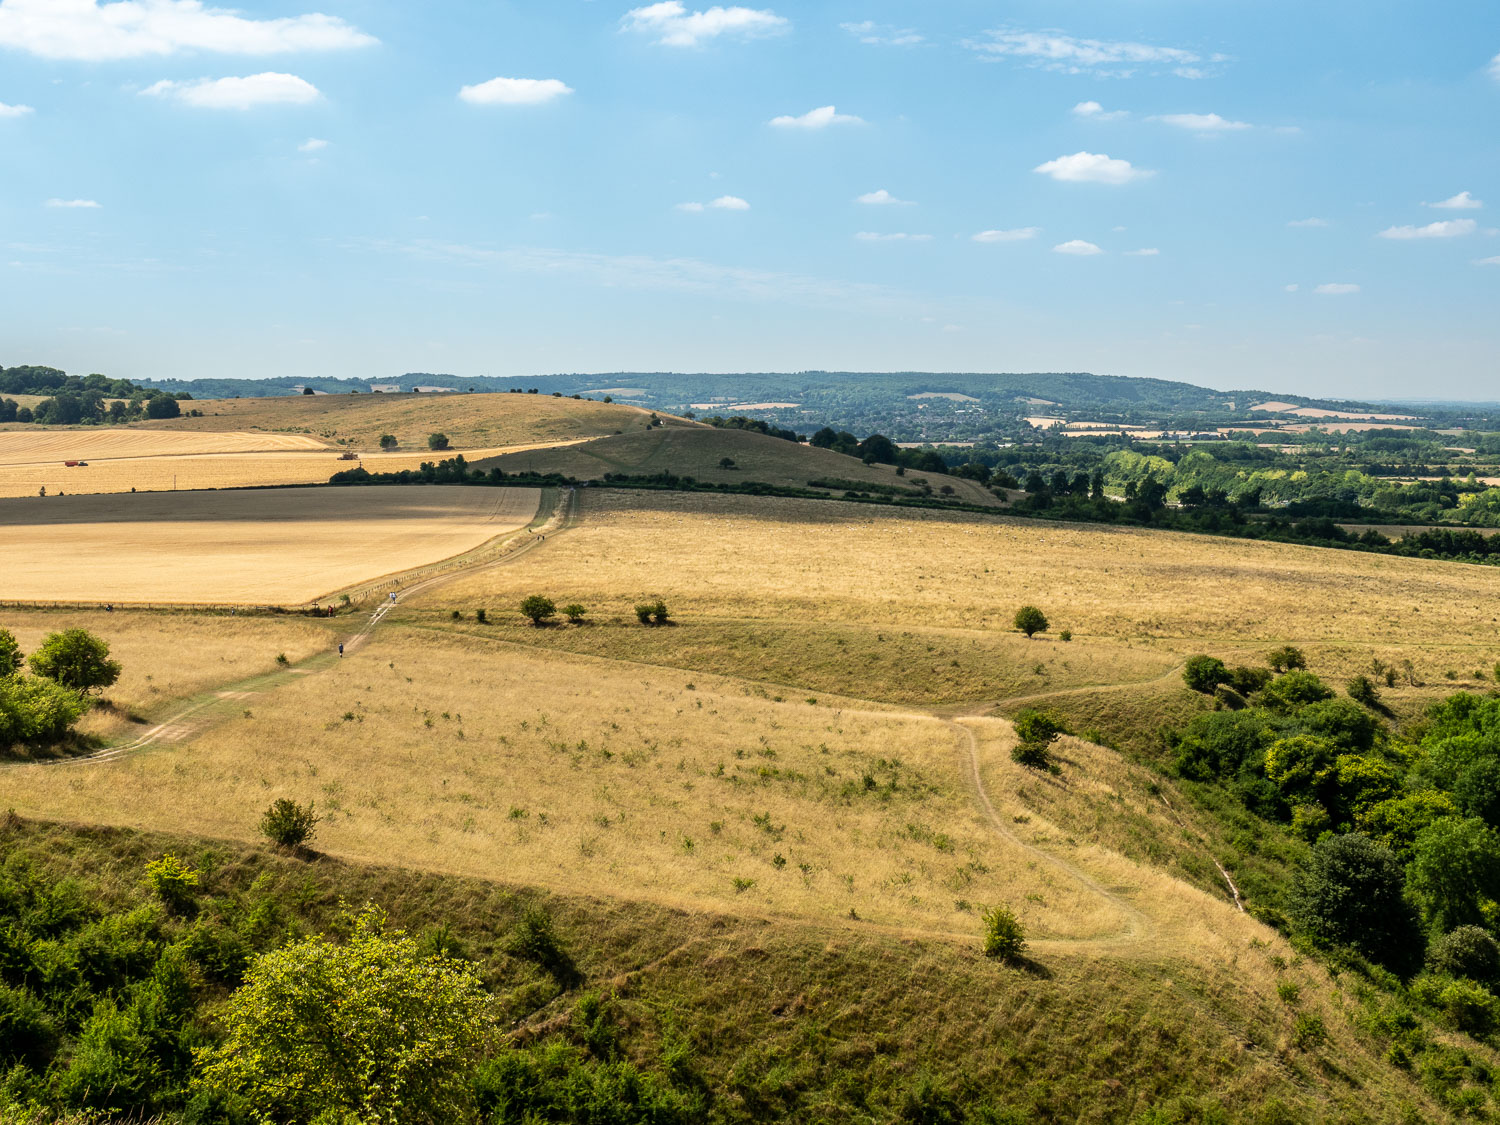 A Landscape Photograph Showing Fields Of Grass And Crops, Taken From Ivinghoe Hills In The Chilterns.